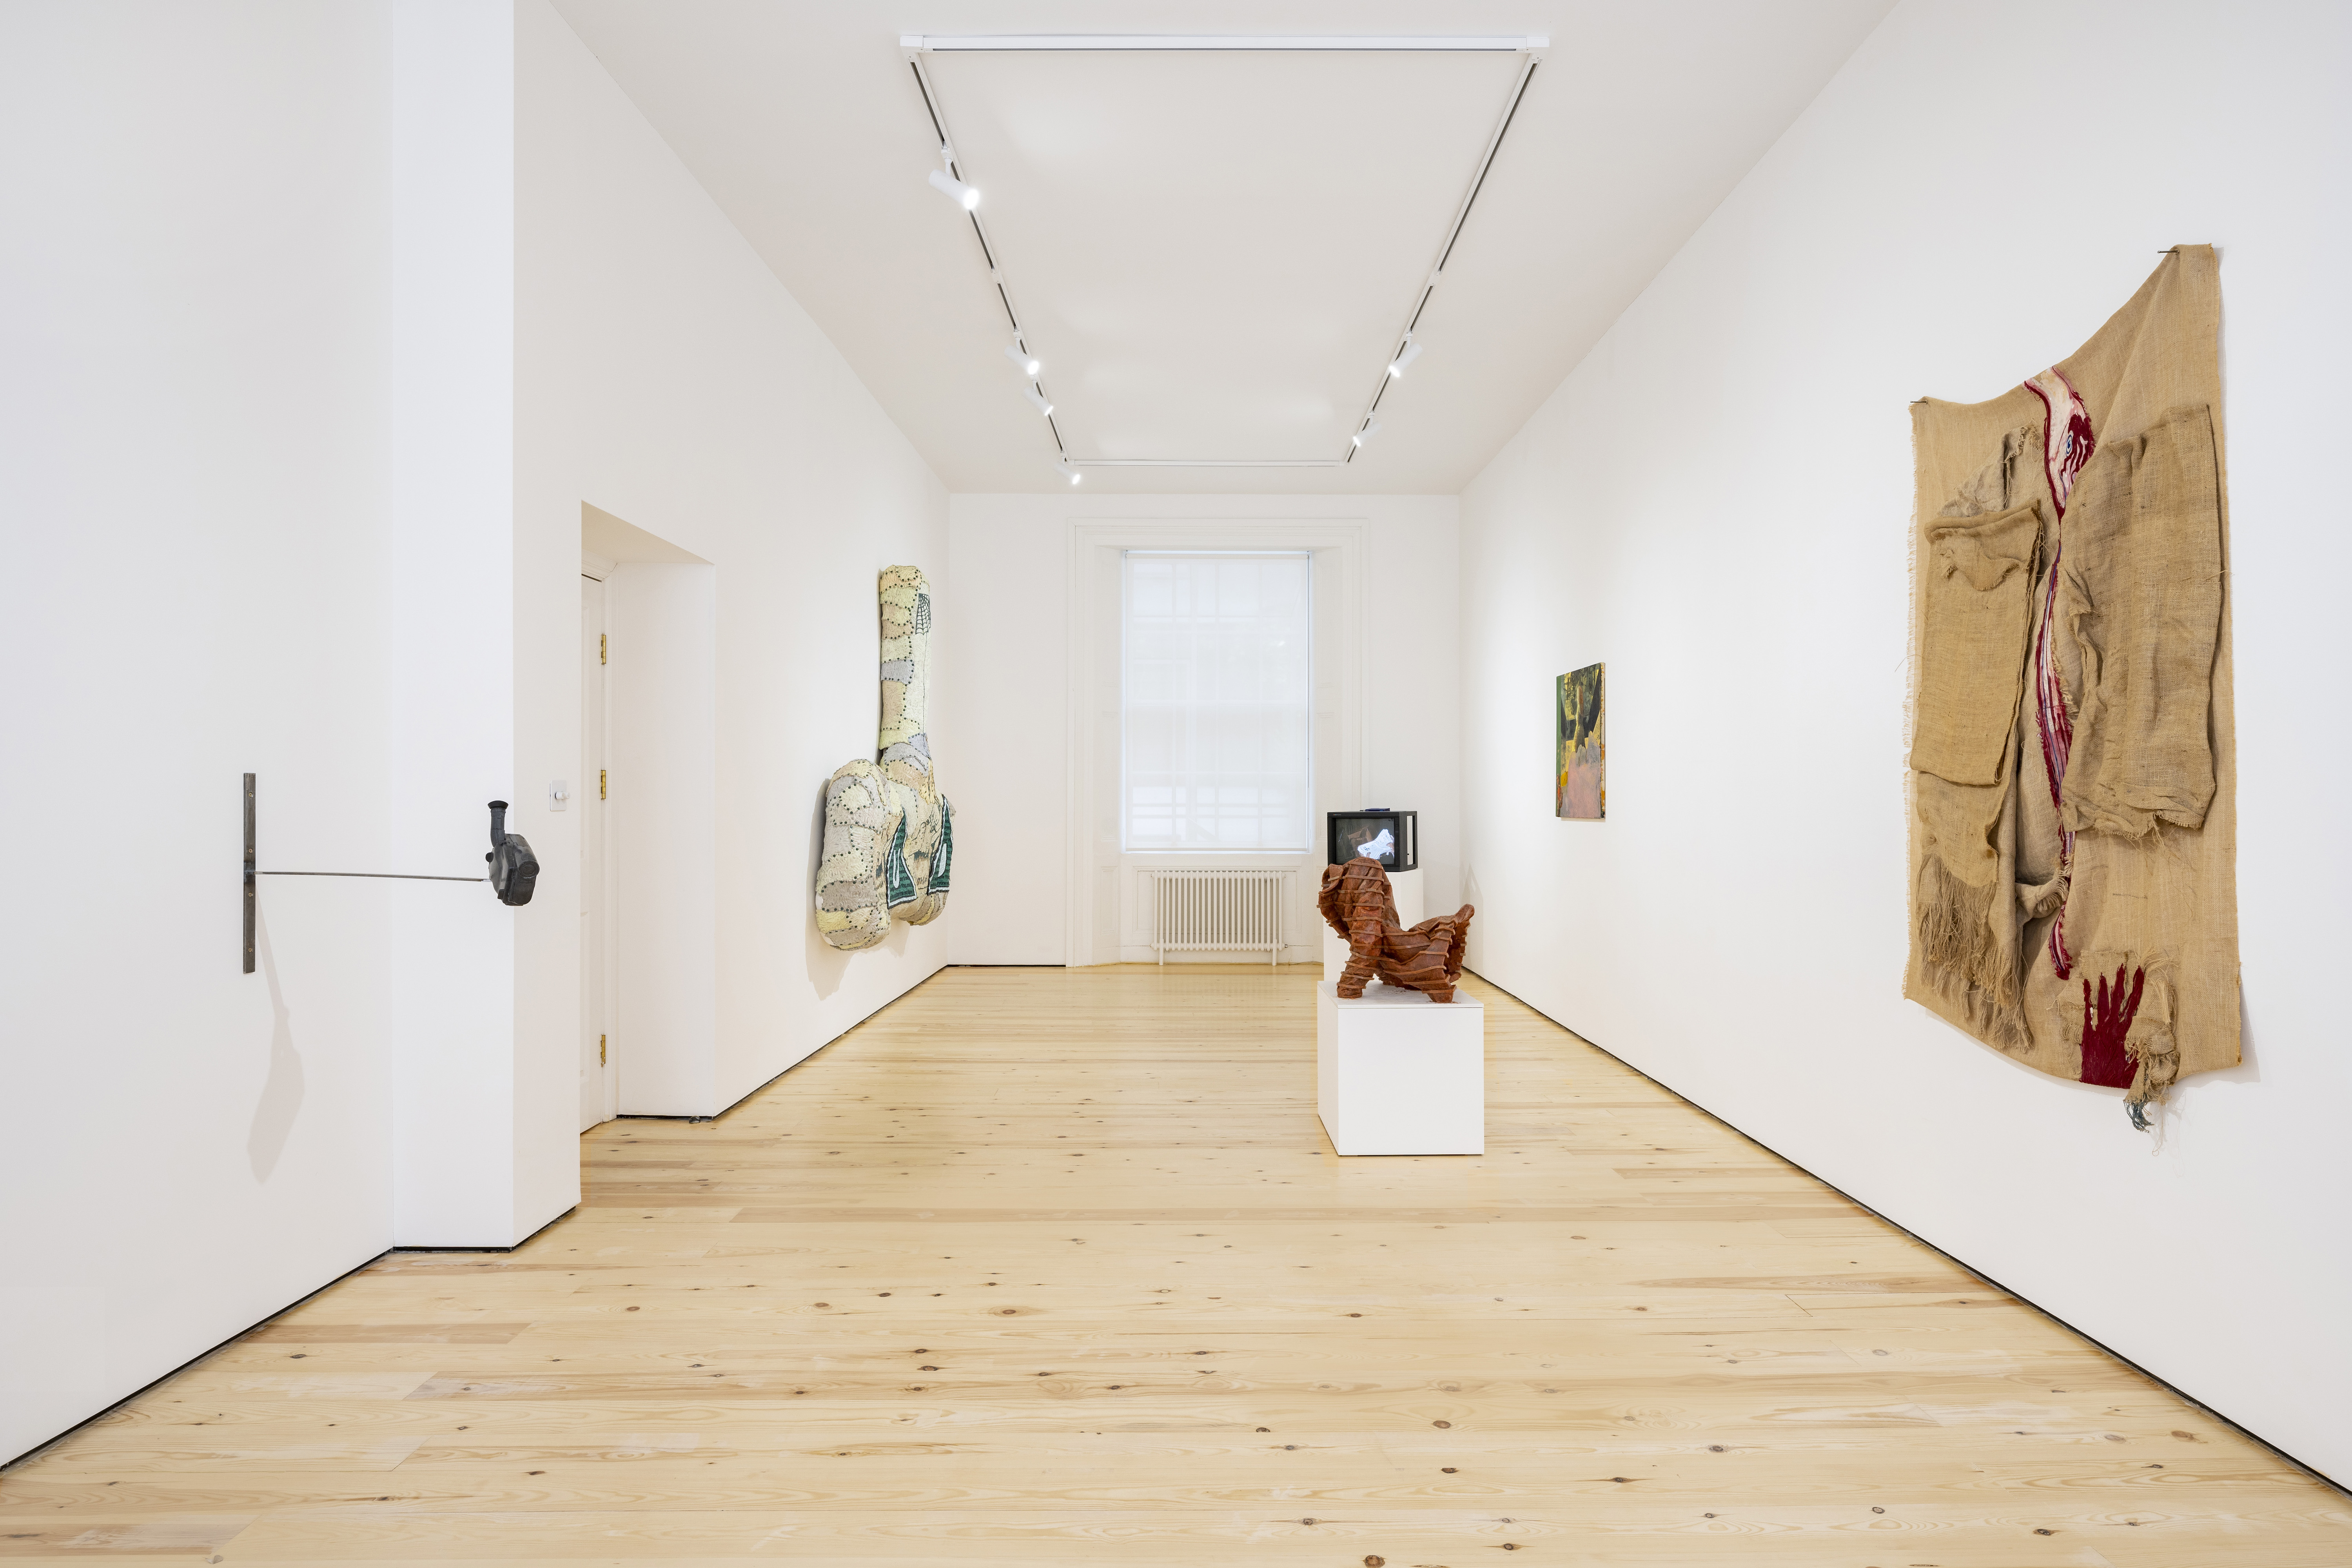 Installation view of 'Corps', MAMOTH, London. All images copyright and courtesy of the artists and MAMOTH, London. Photographed by Damian Griffiths.